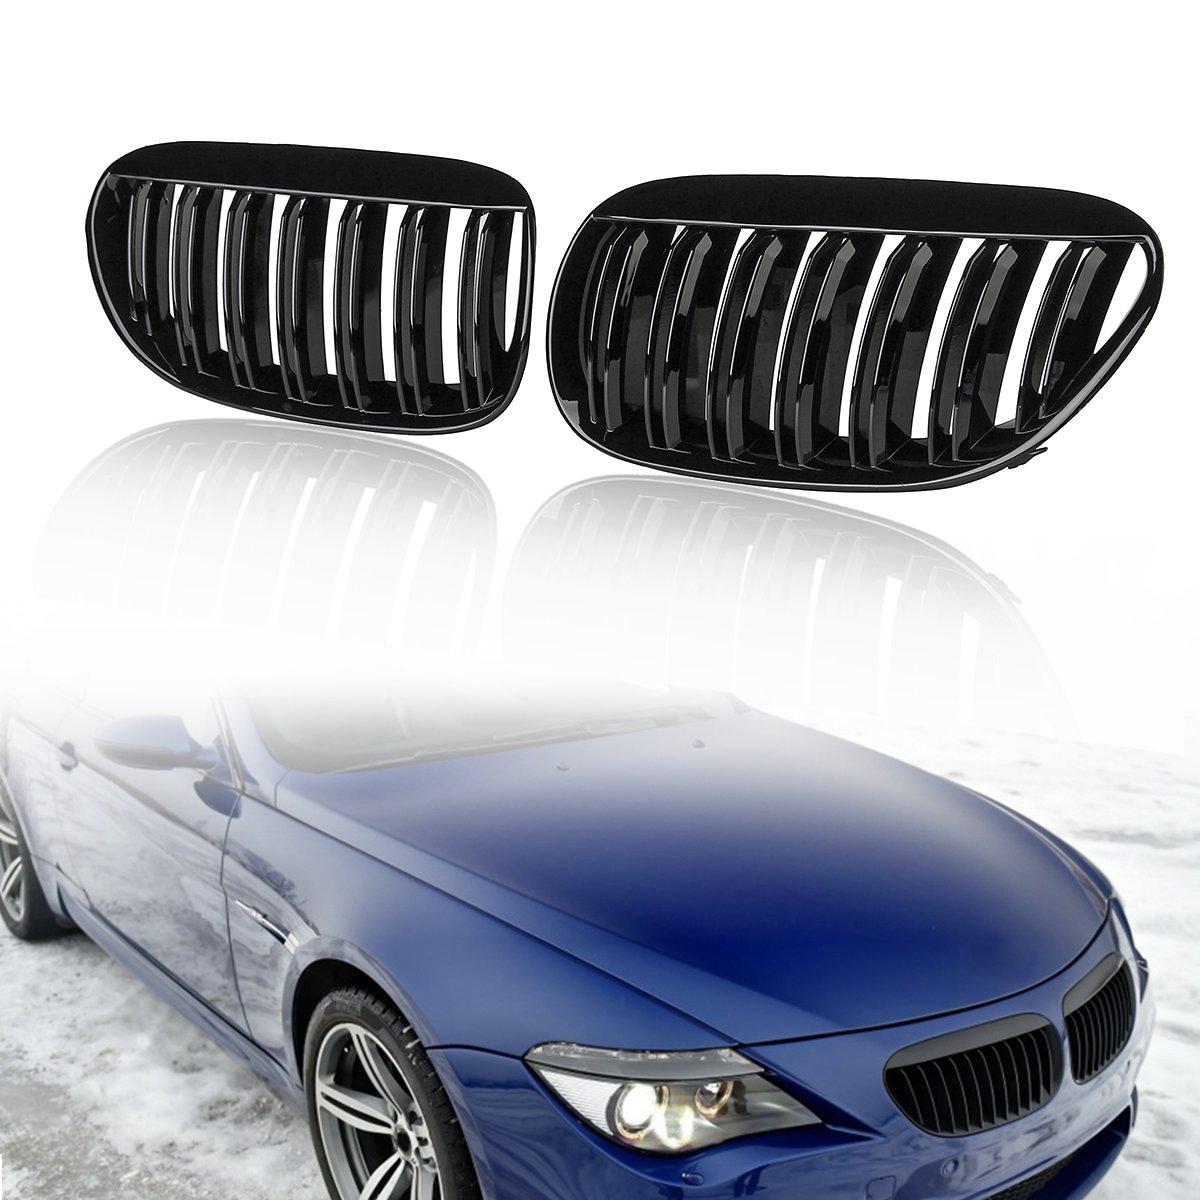 INDOOR OUTDOOR FULLY WATERPROOF CAR COVER COTTON LINED HD BMW 5 SERIES SALOON